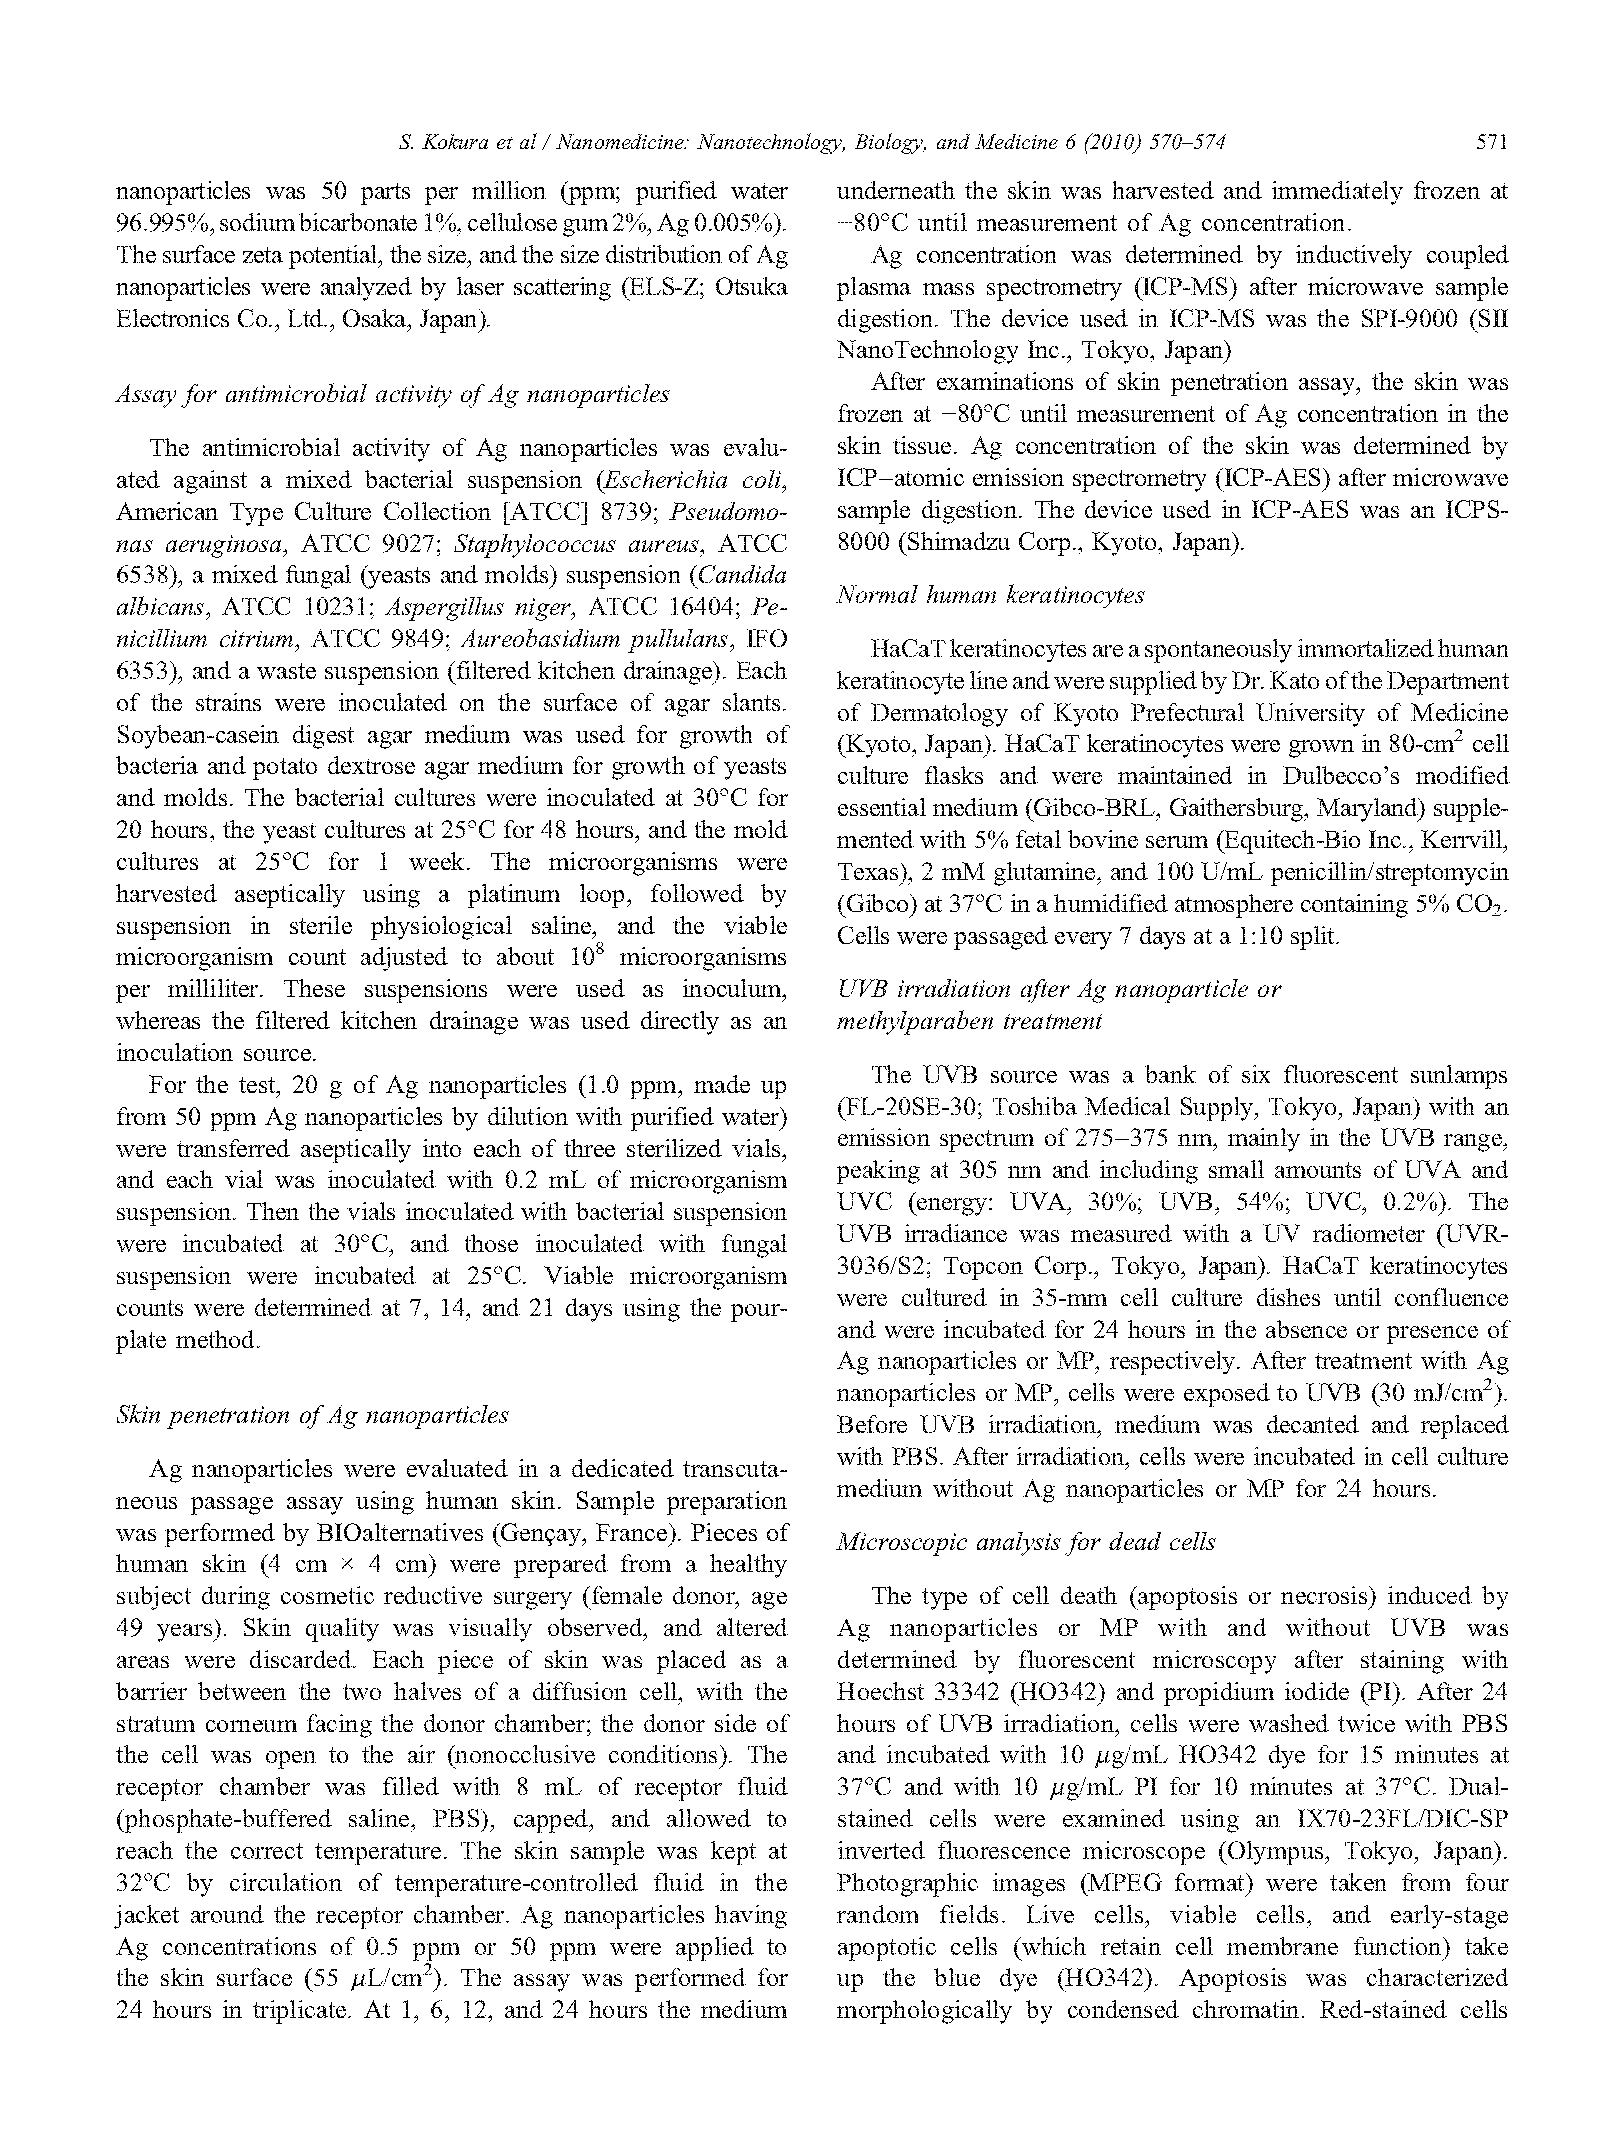 Silver nanoparticles as a safe preservative for use in cosmetics page 2